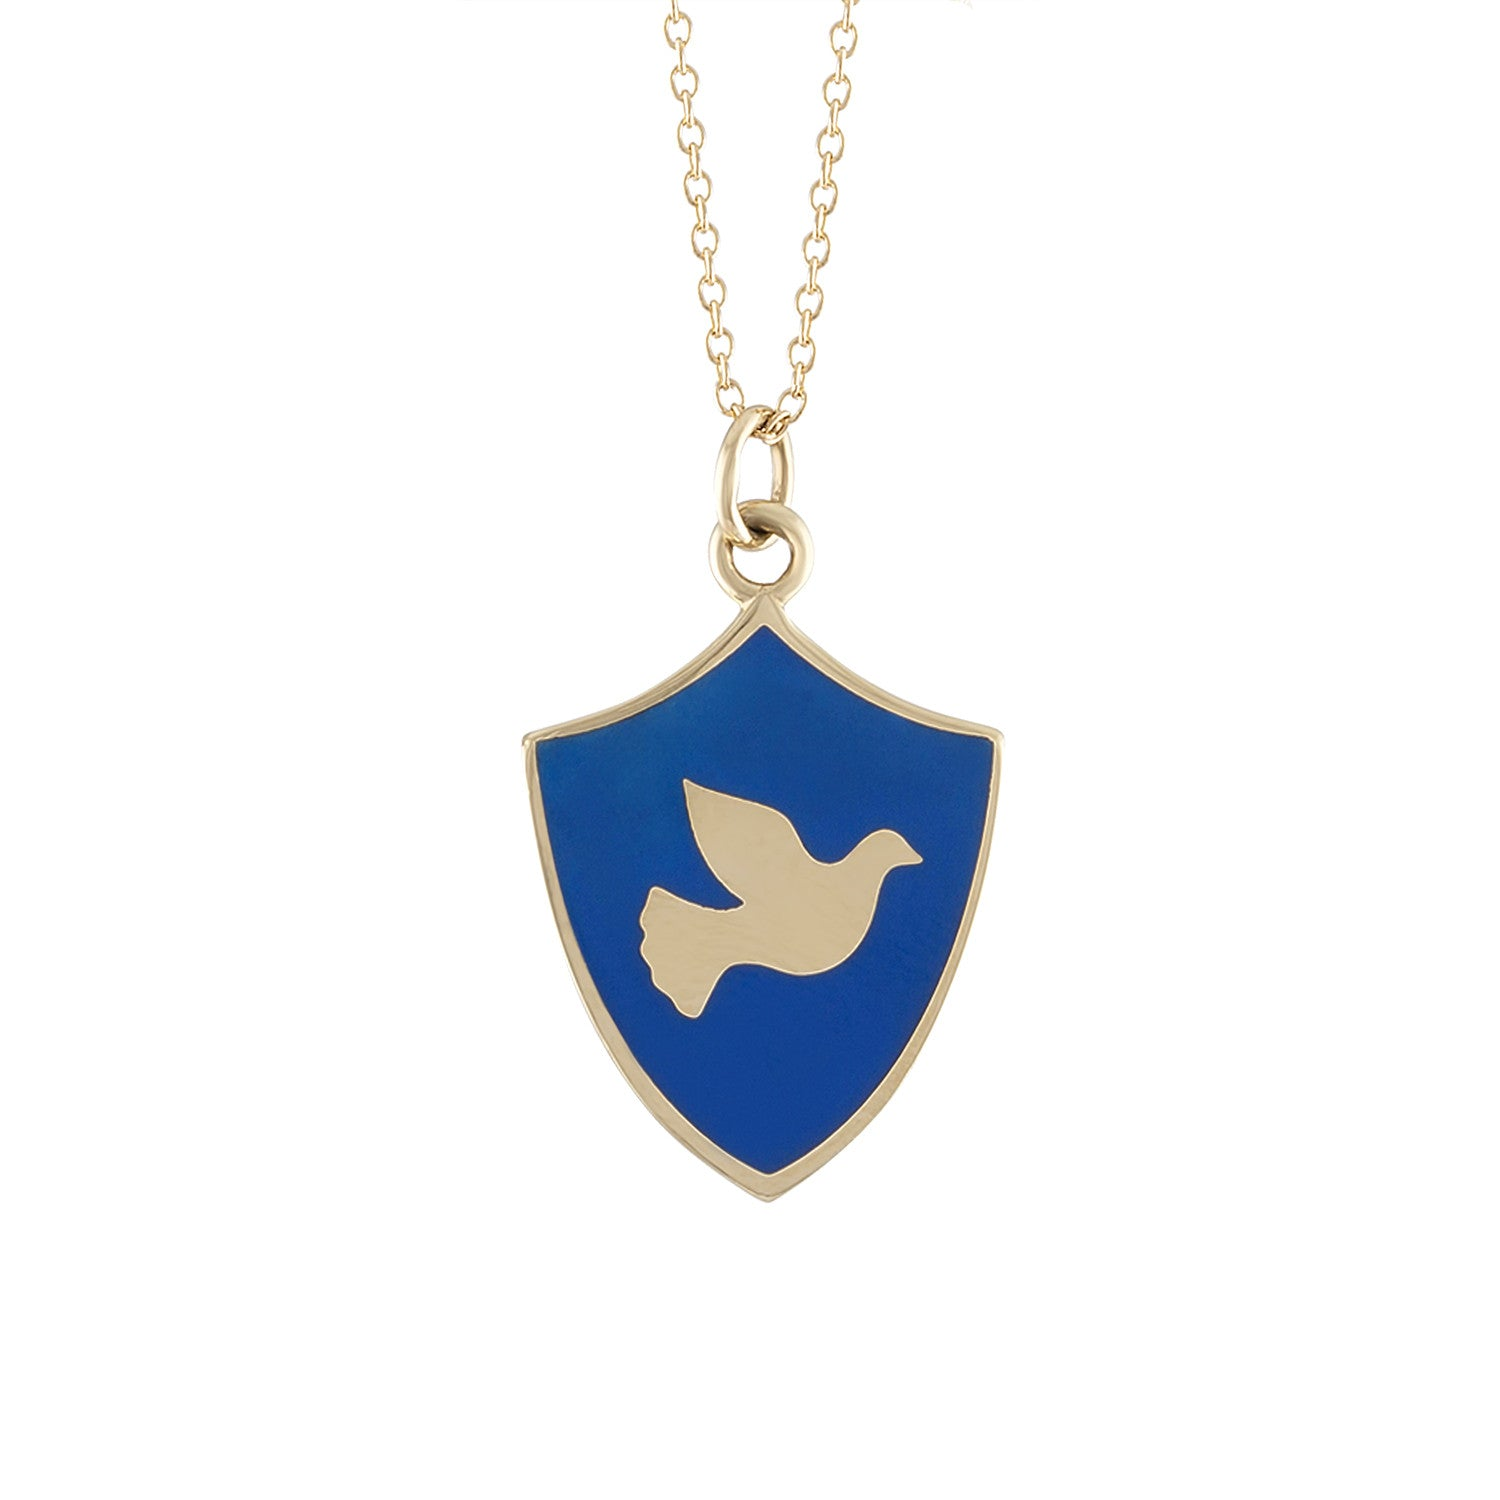 14k gold mini dove shield charm necklace in blue enamel